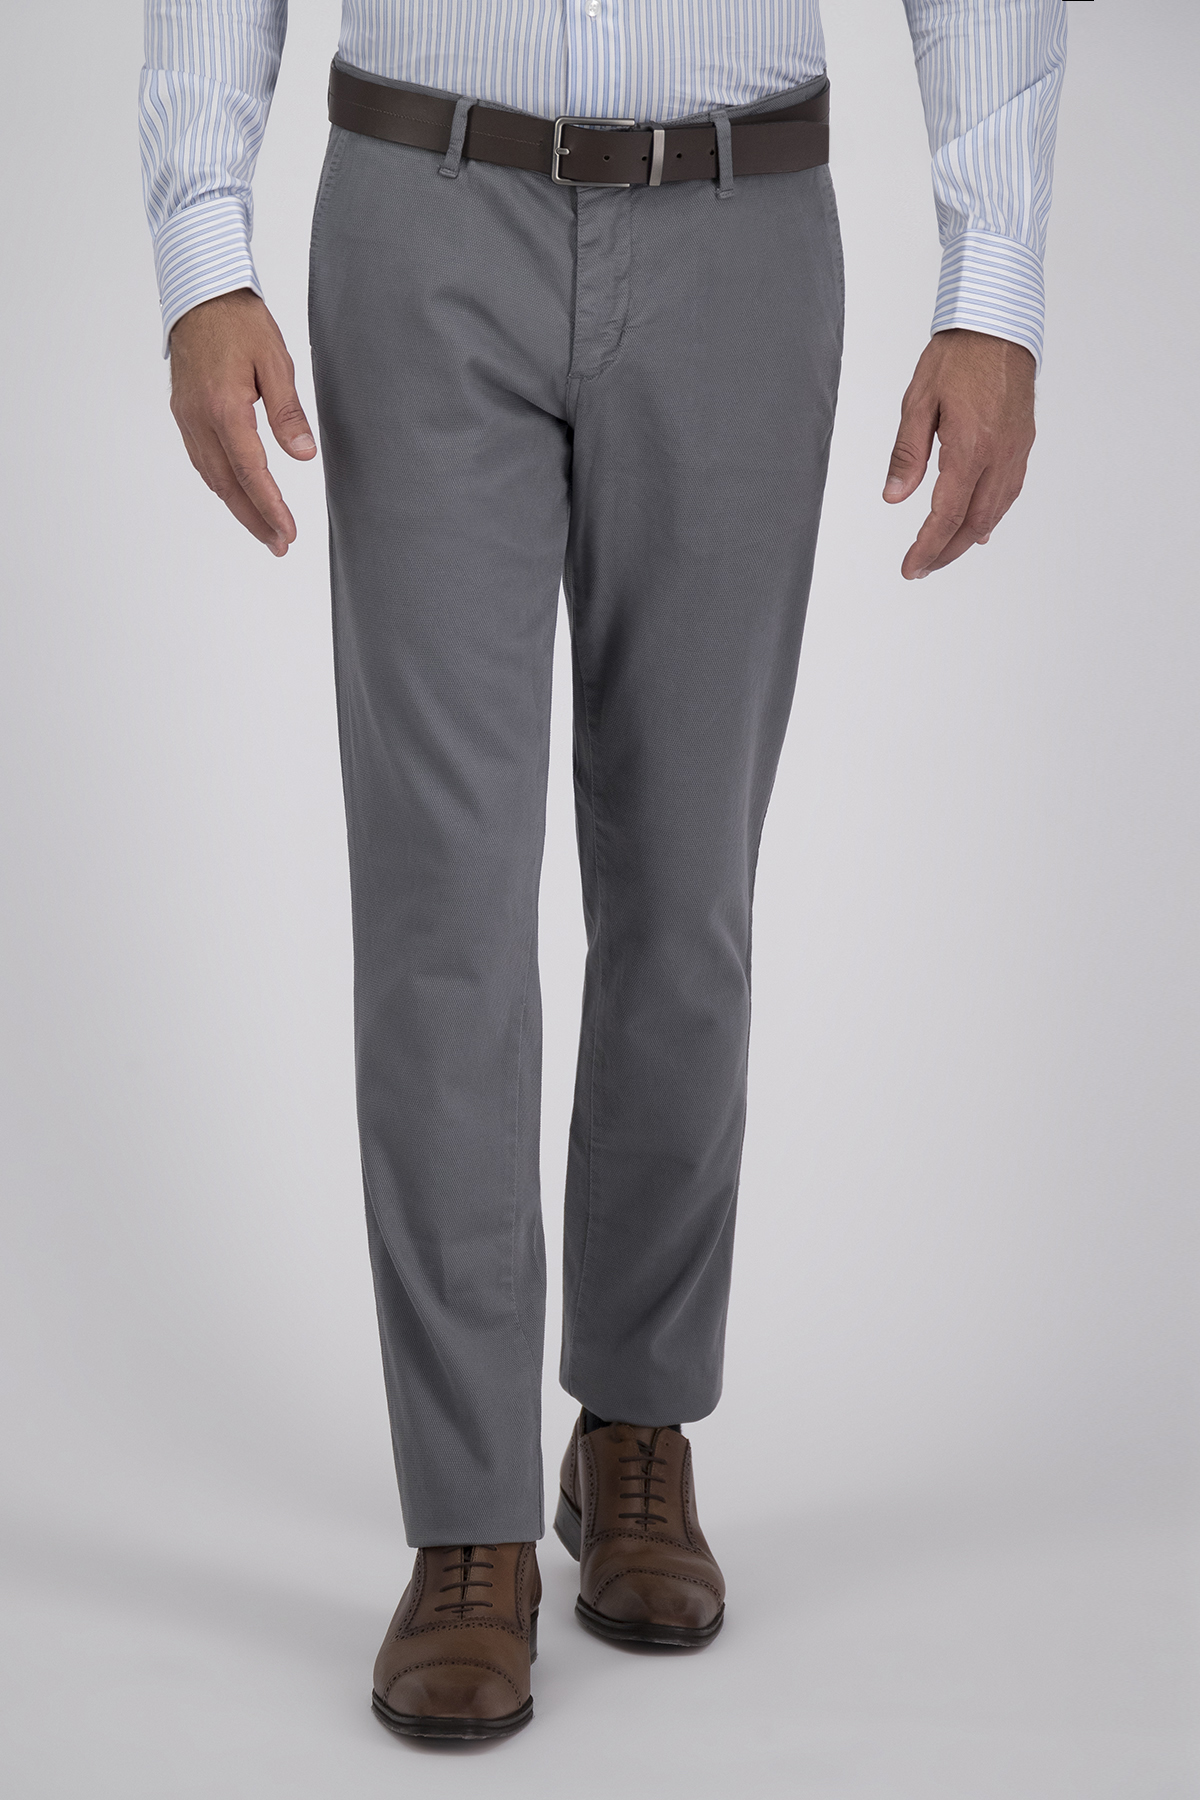 Pantalón Sport High Life, Algodón 100%  Gris, Corte Slim, Tipo Chino, Made in Italy.